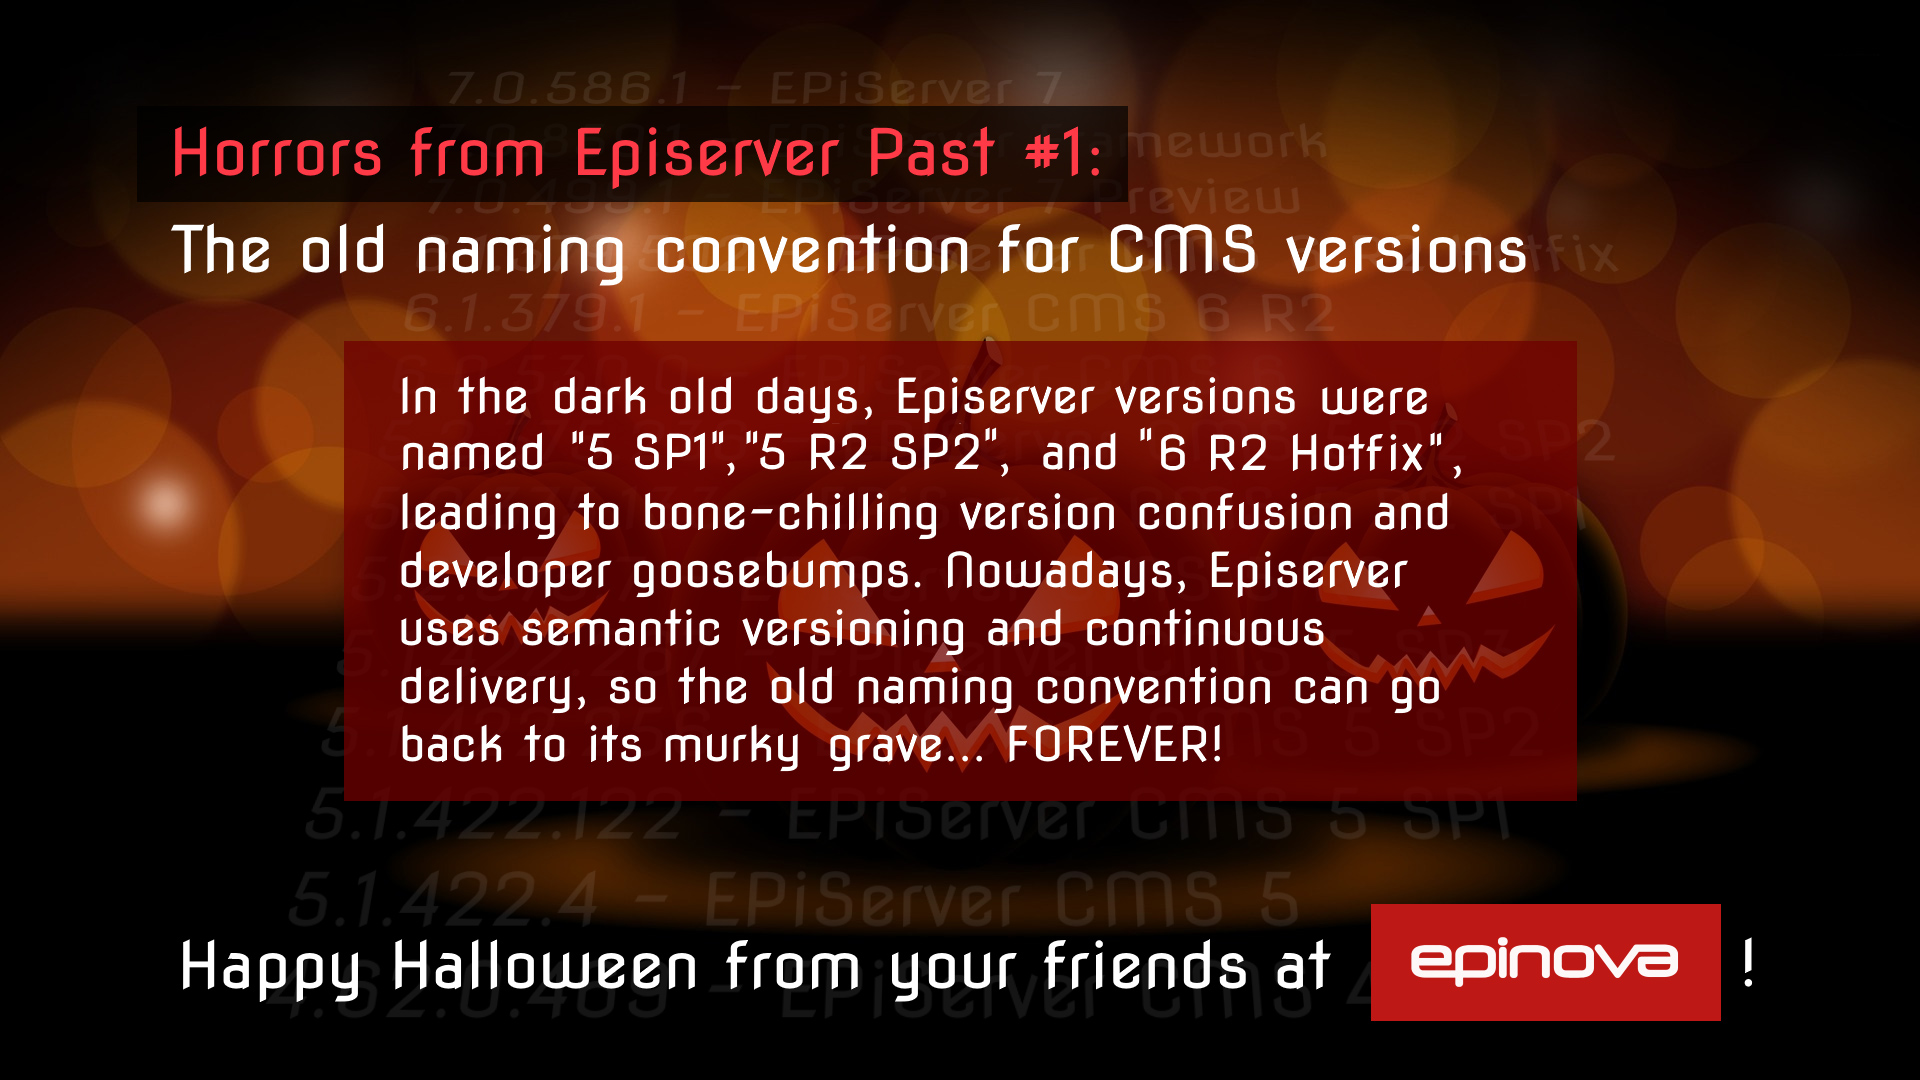 Humorous Halloween throwback at Episerver's old naming convention